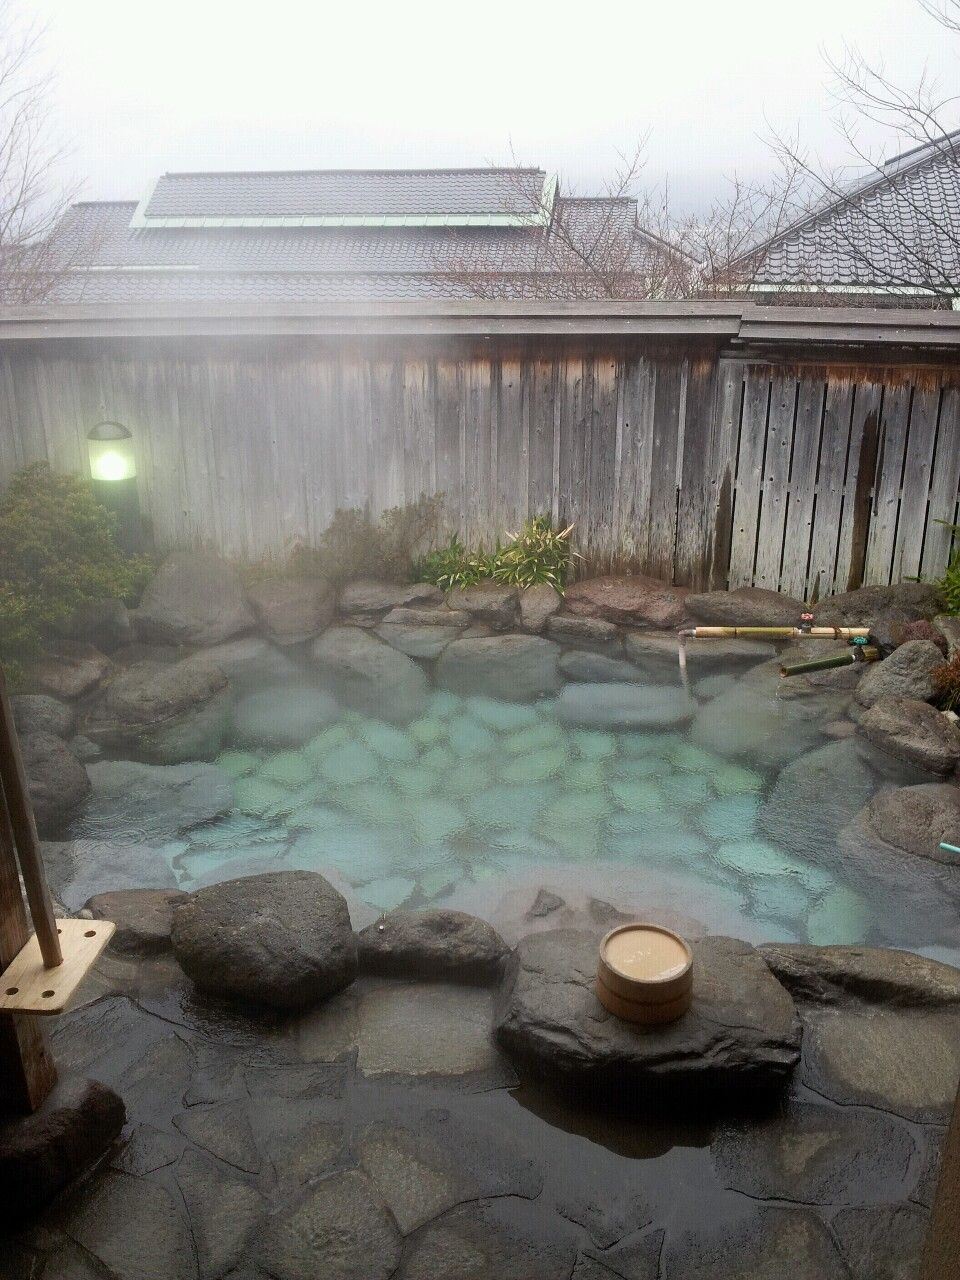 47 Irresistible hot tub spa designs for your backyard | Outdoor ...